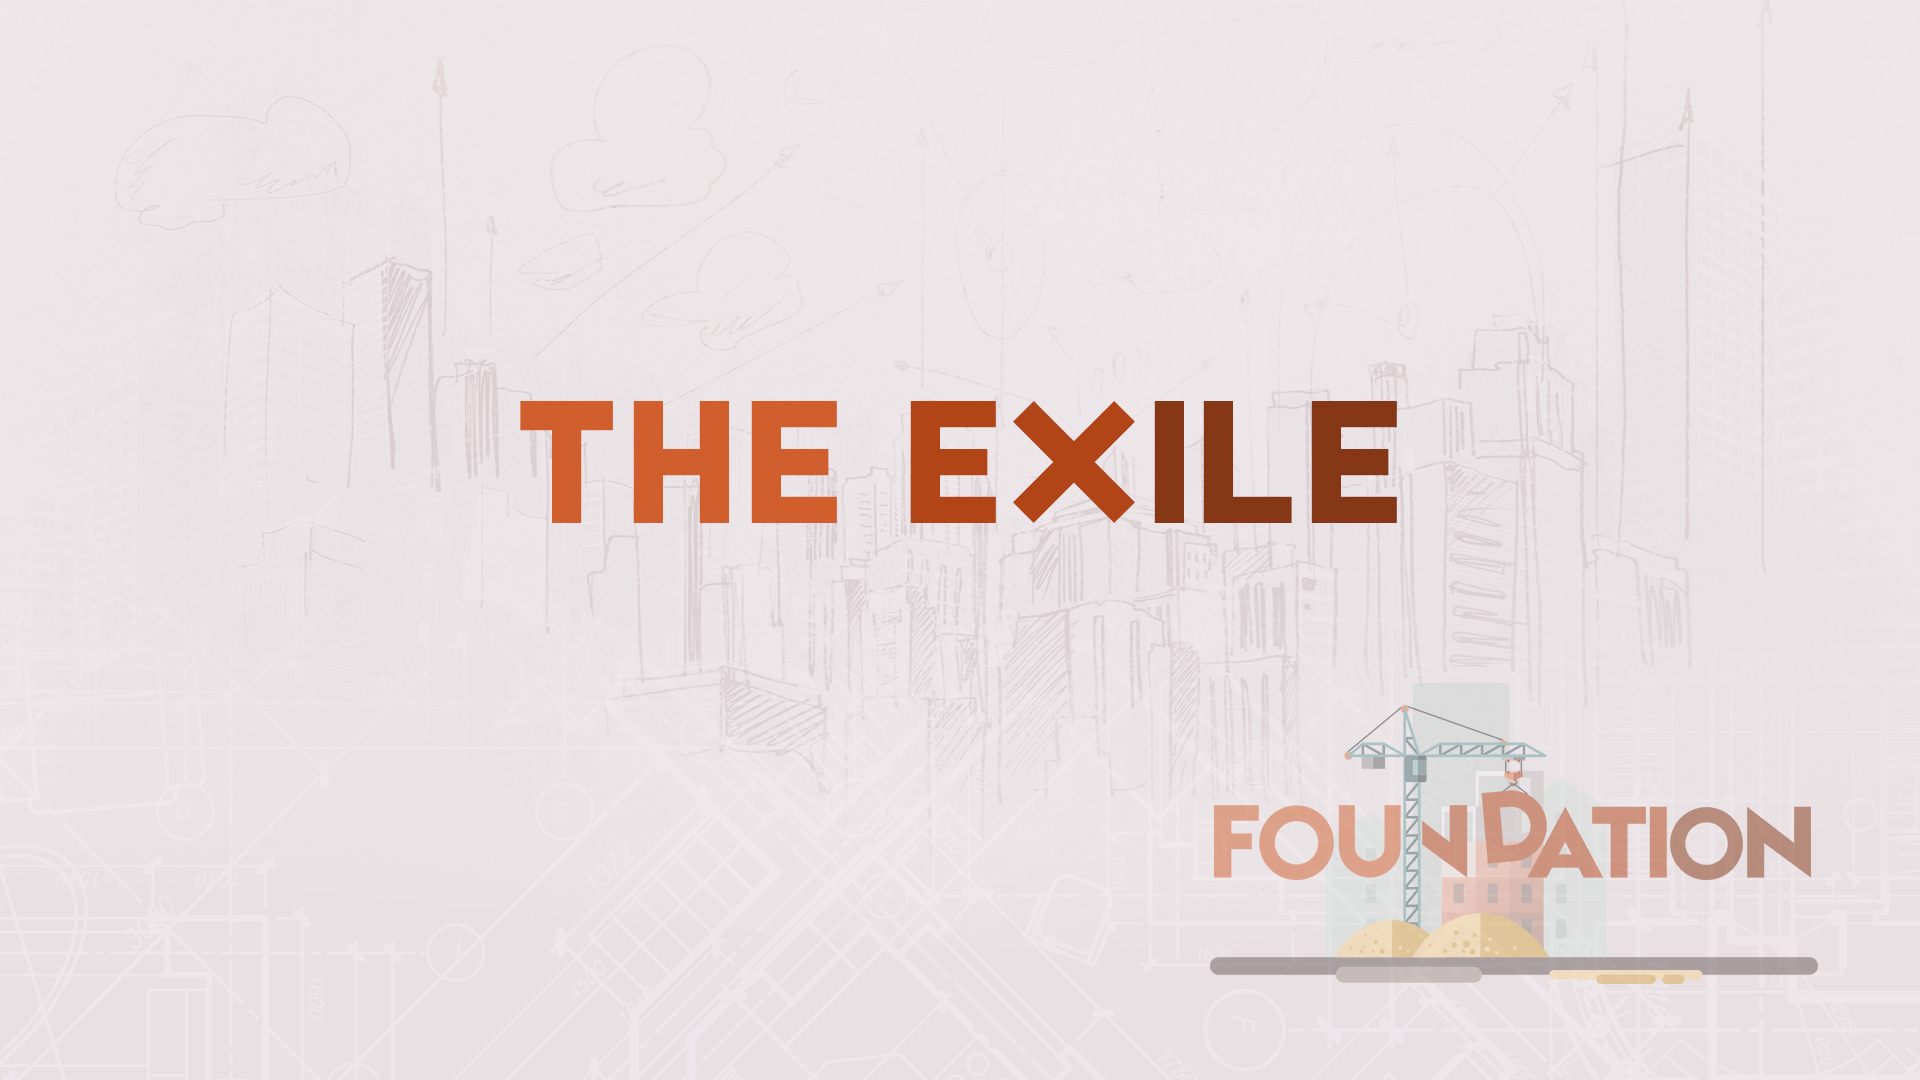 Foundation: The Exile